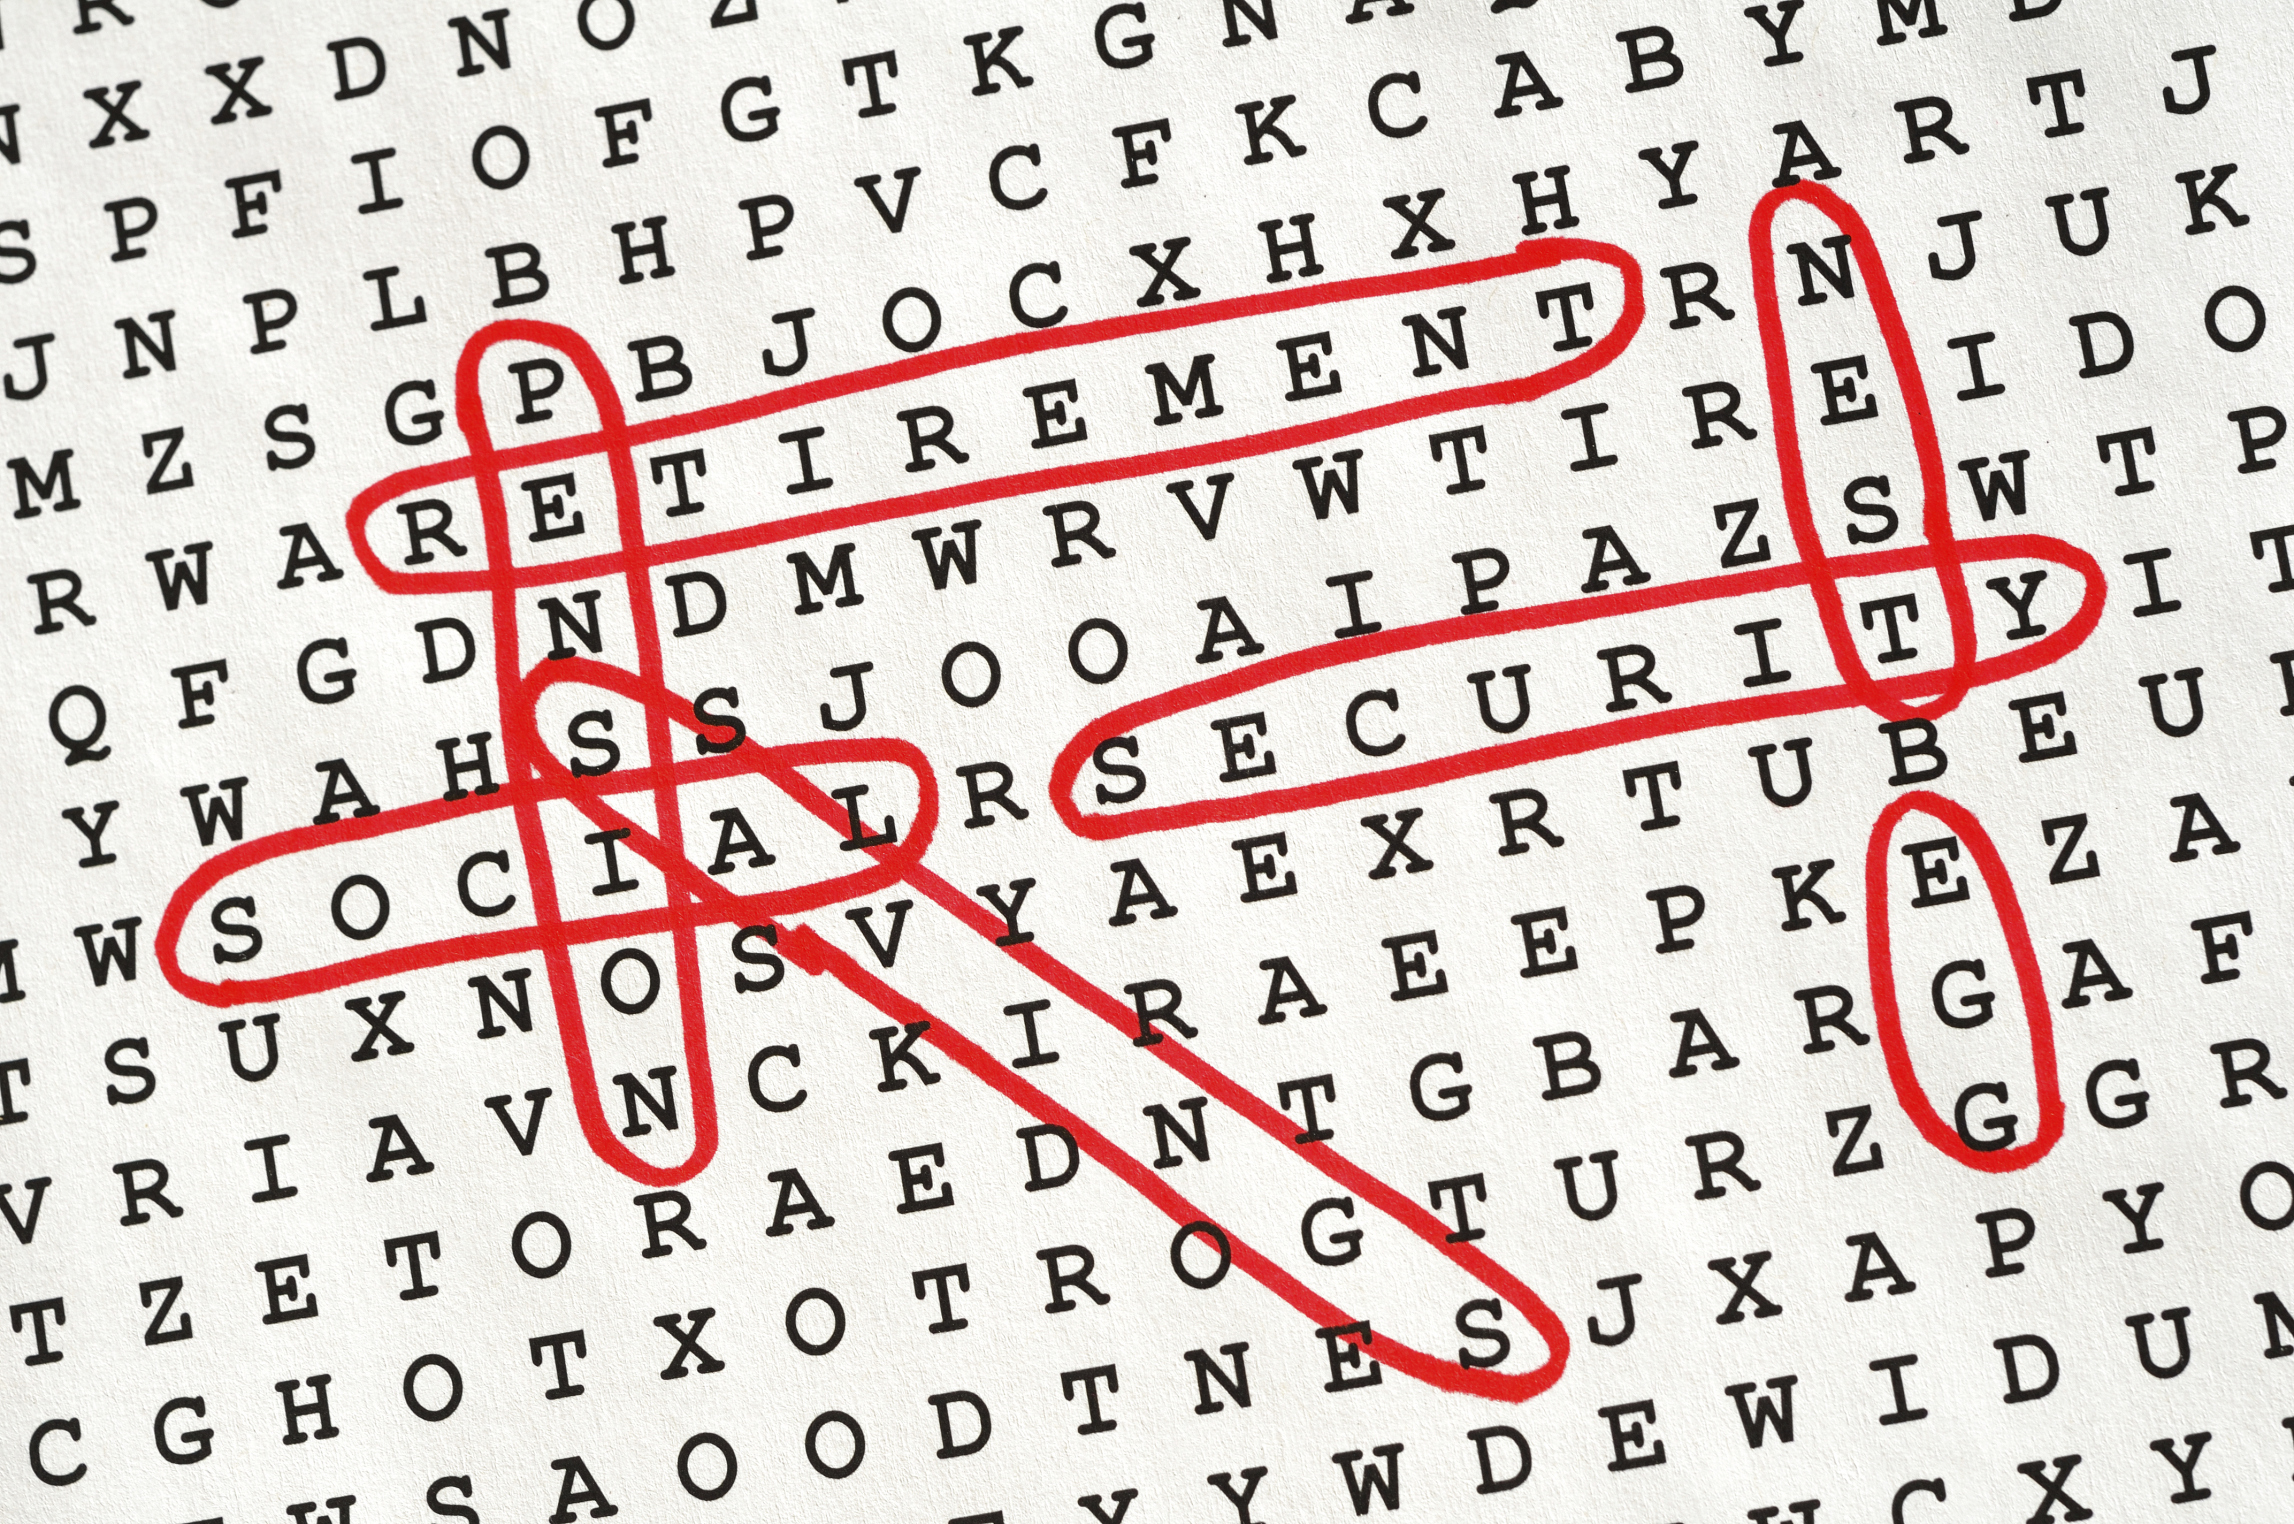 Retirement Word Search Puzzle